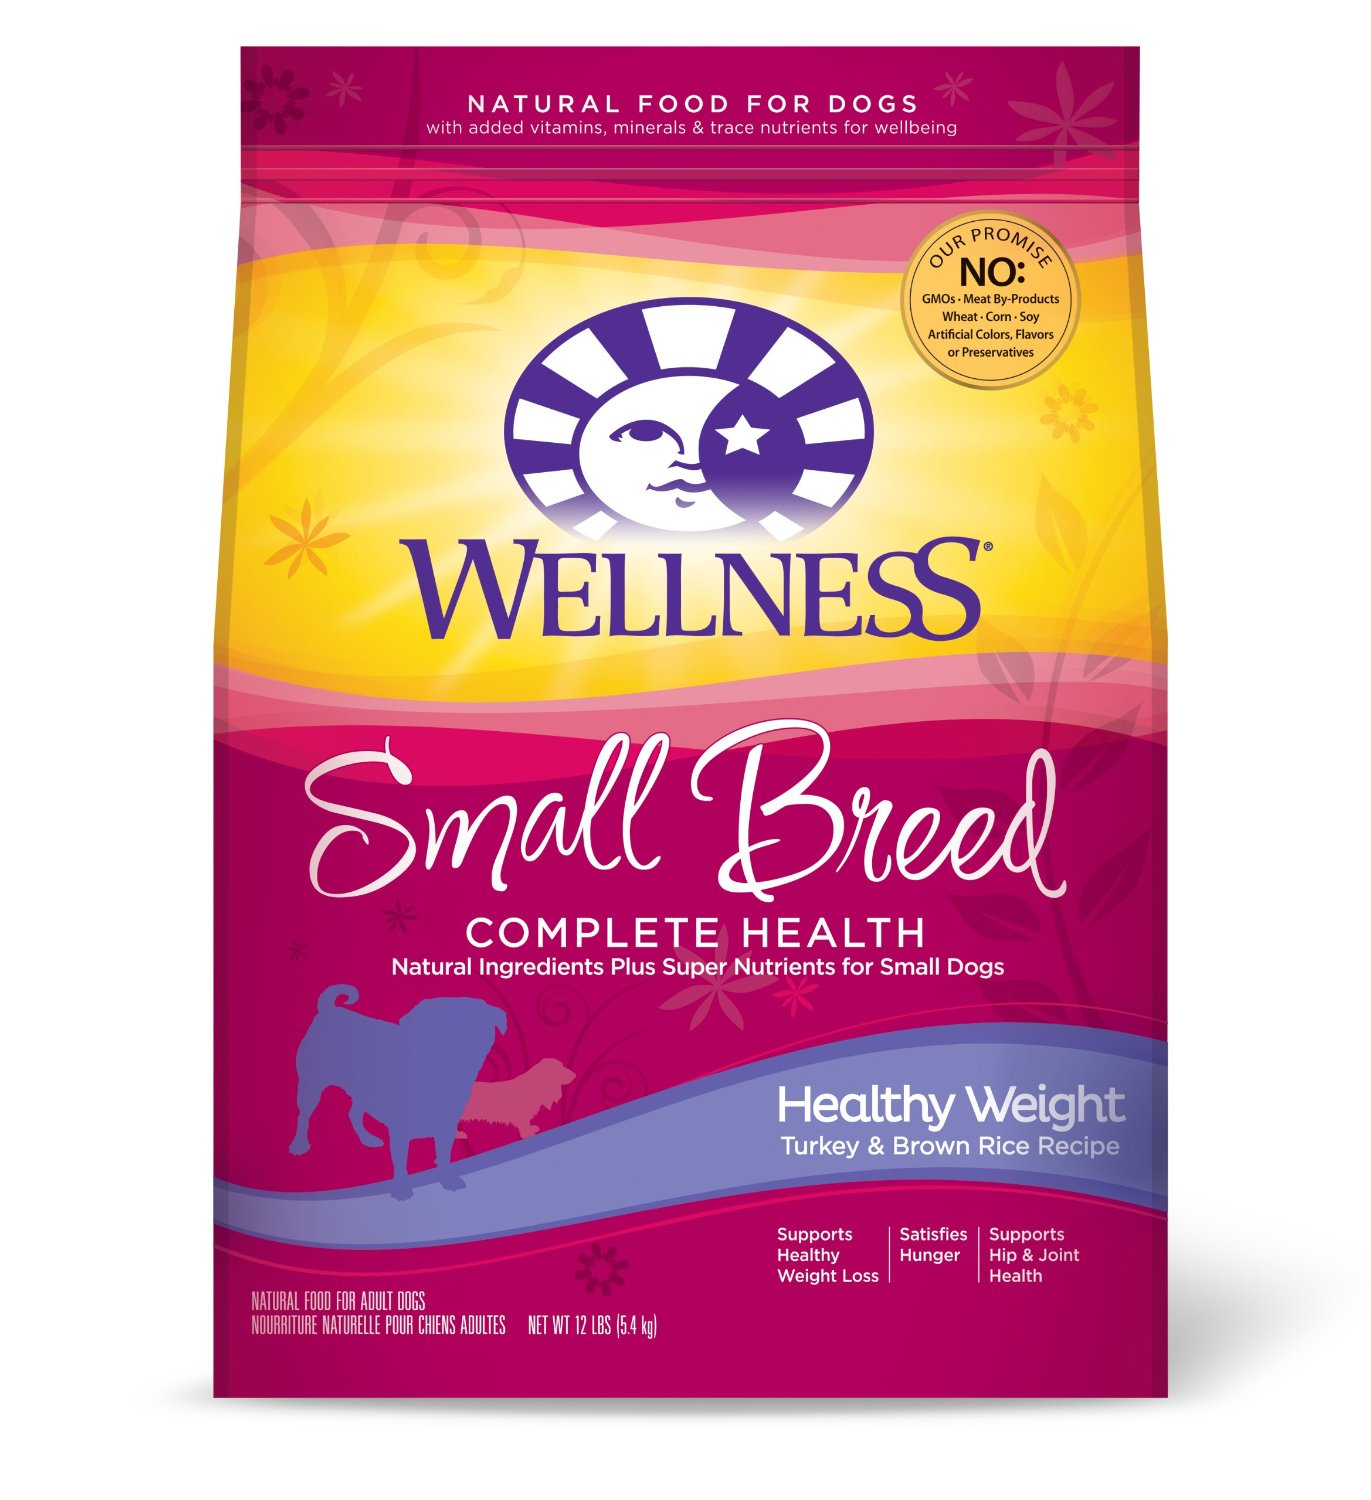 Small Breed Complete Health Healthy Weight Turkey & Brown Rice Recipe